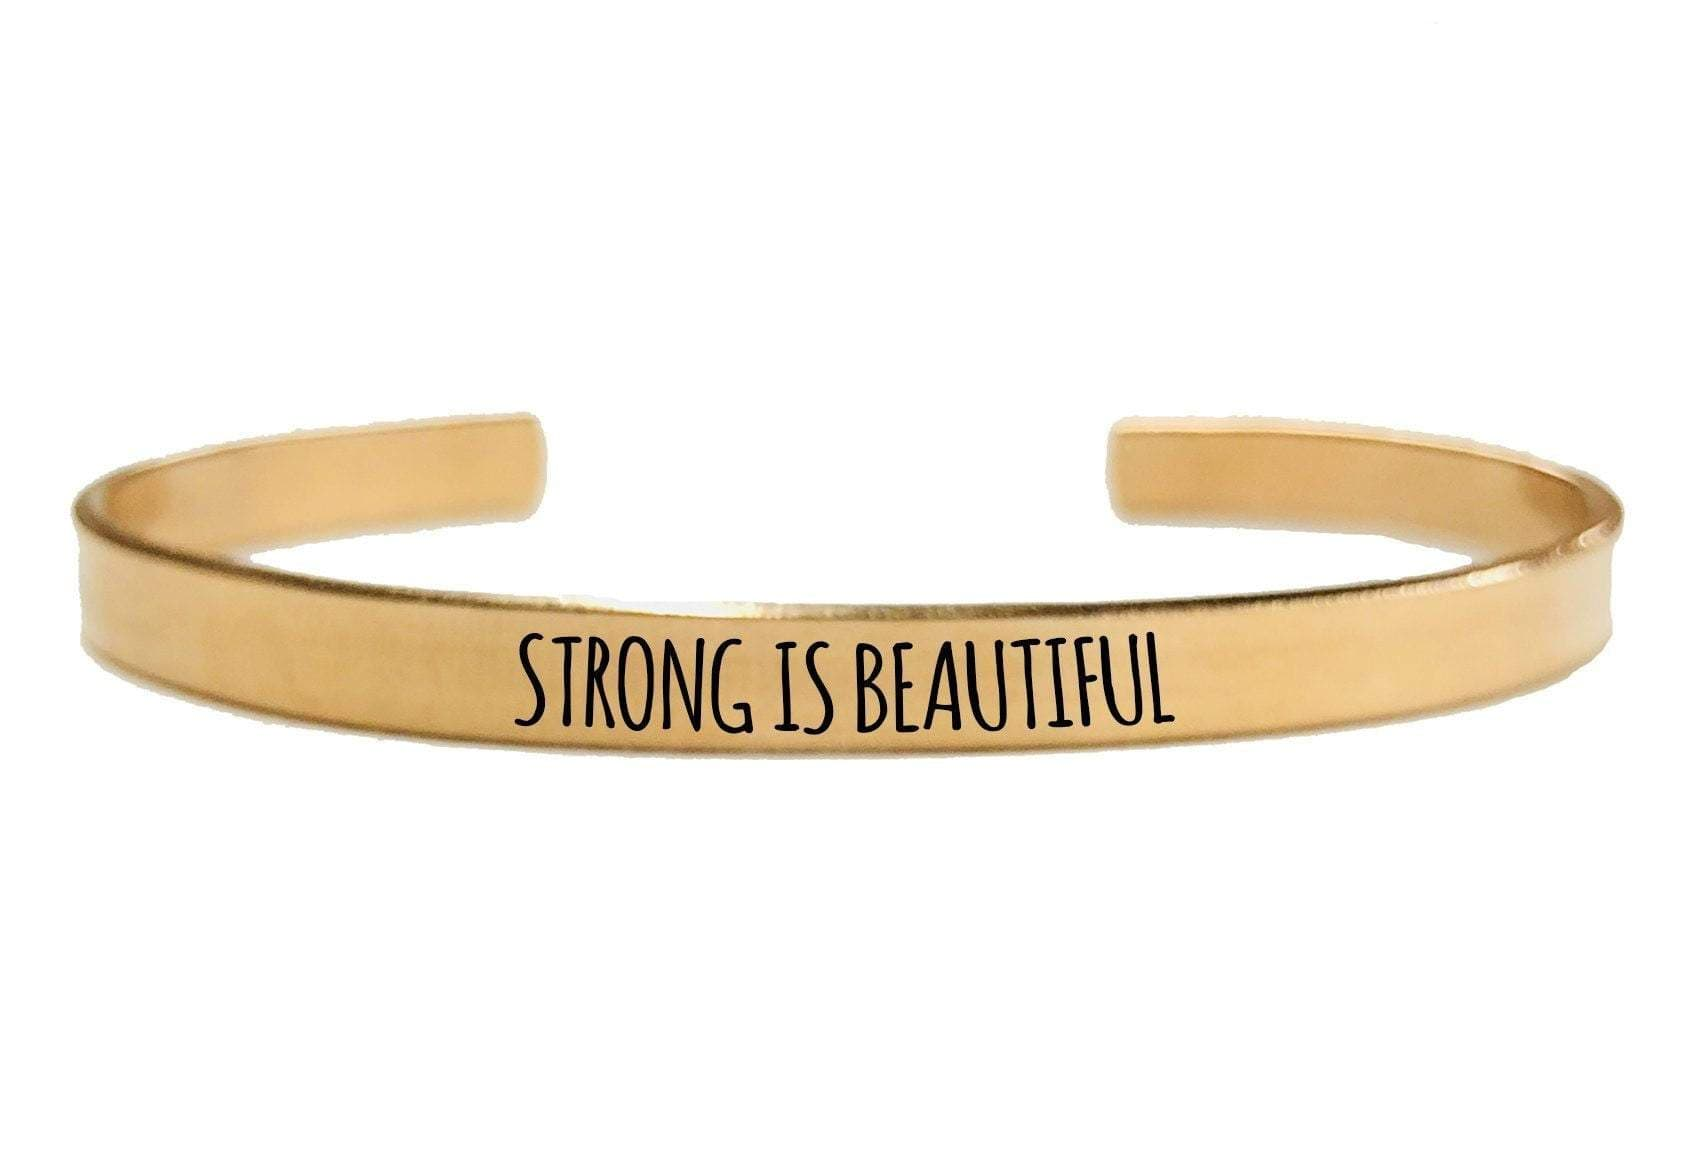 STRONG IS BEAUITIFUL CUFF BRACELET